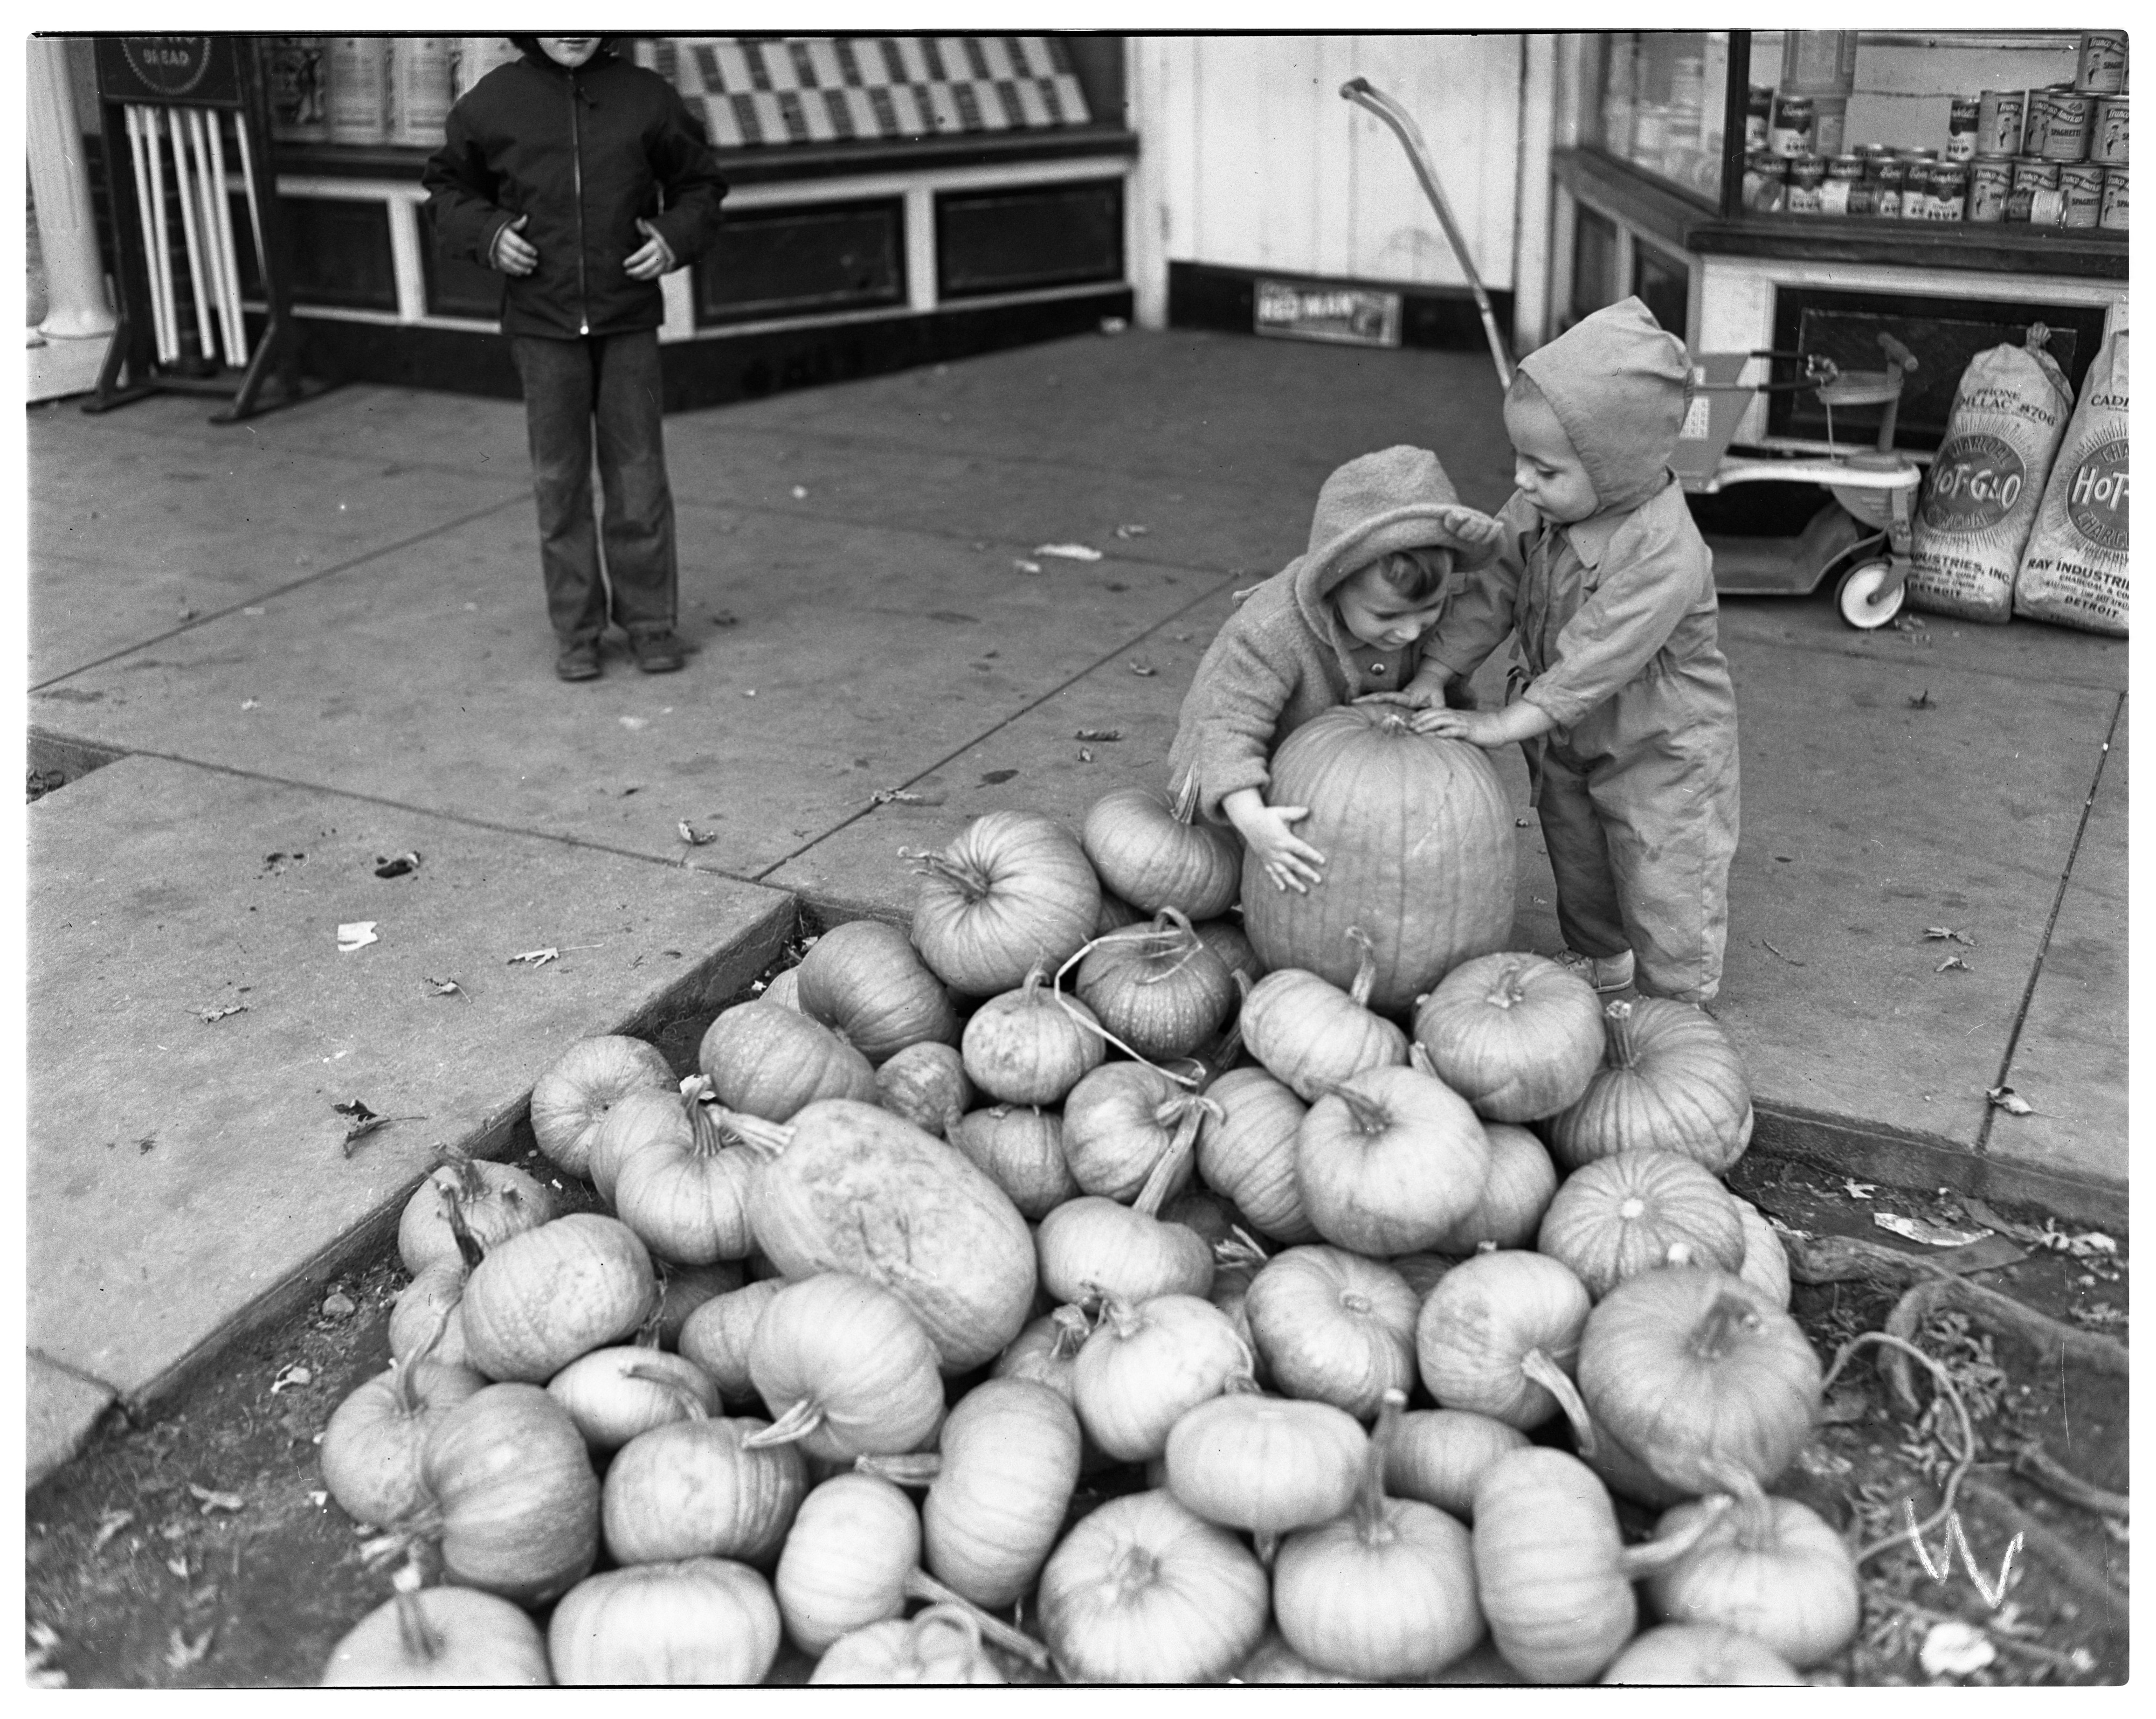 Eighth Street Market Gives Away Pumpkins, October 1947 image